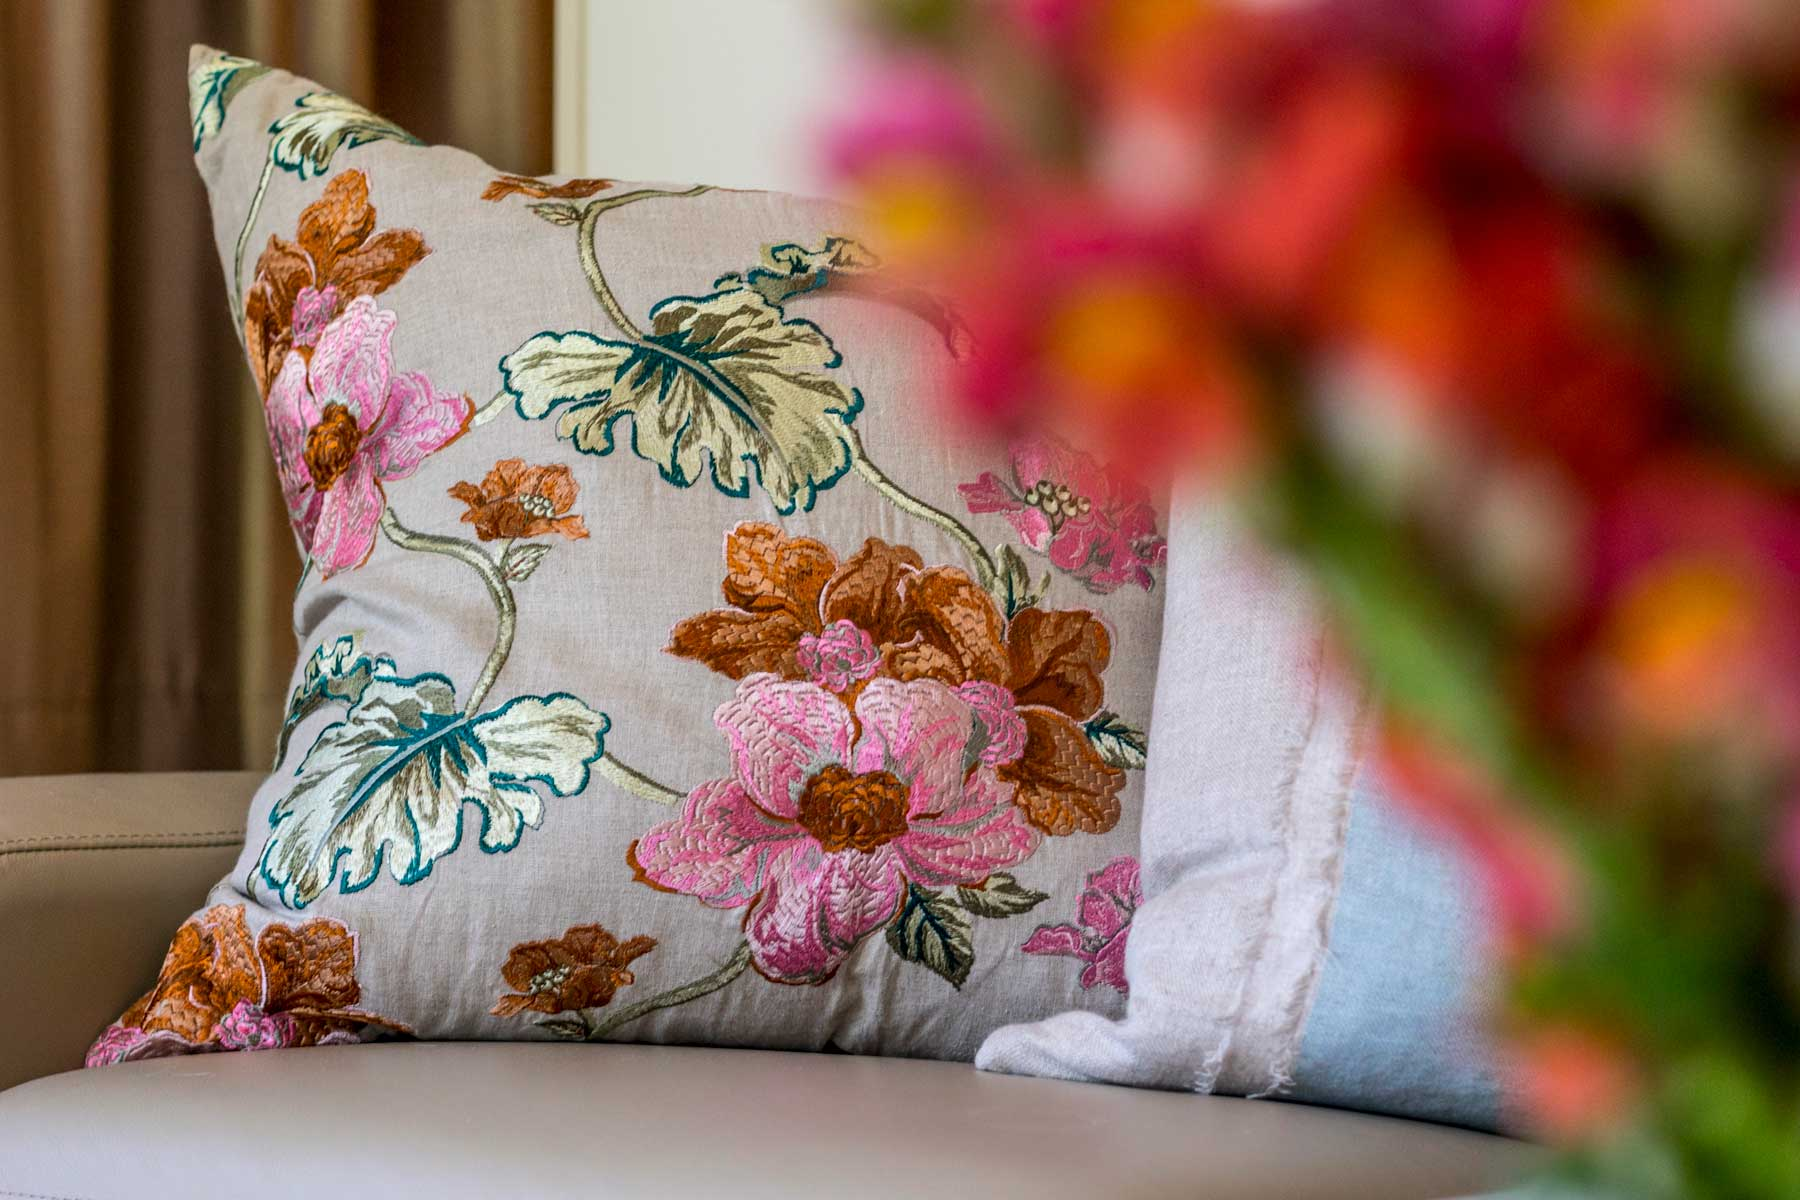 Robyn's vibrant beach apartment - after - cushion floral